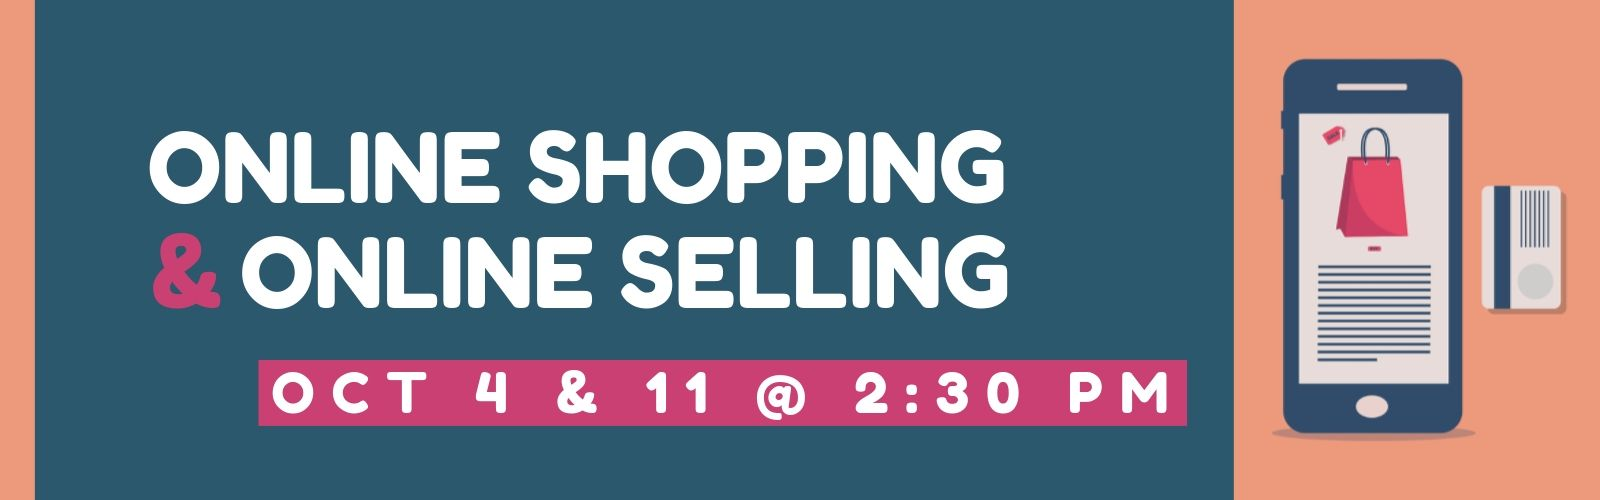 Online Shopping and Online Selling - October 4 and 11 at 2:30 pm